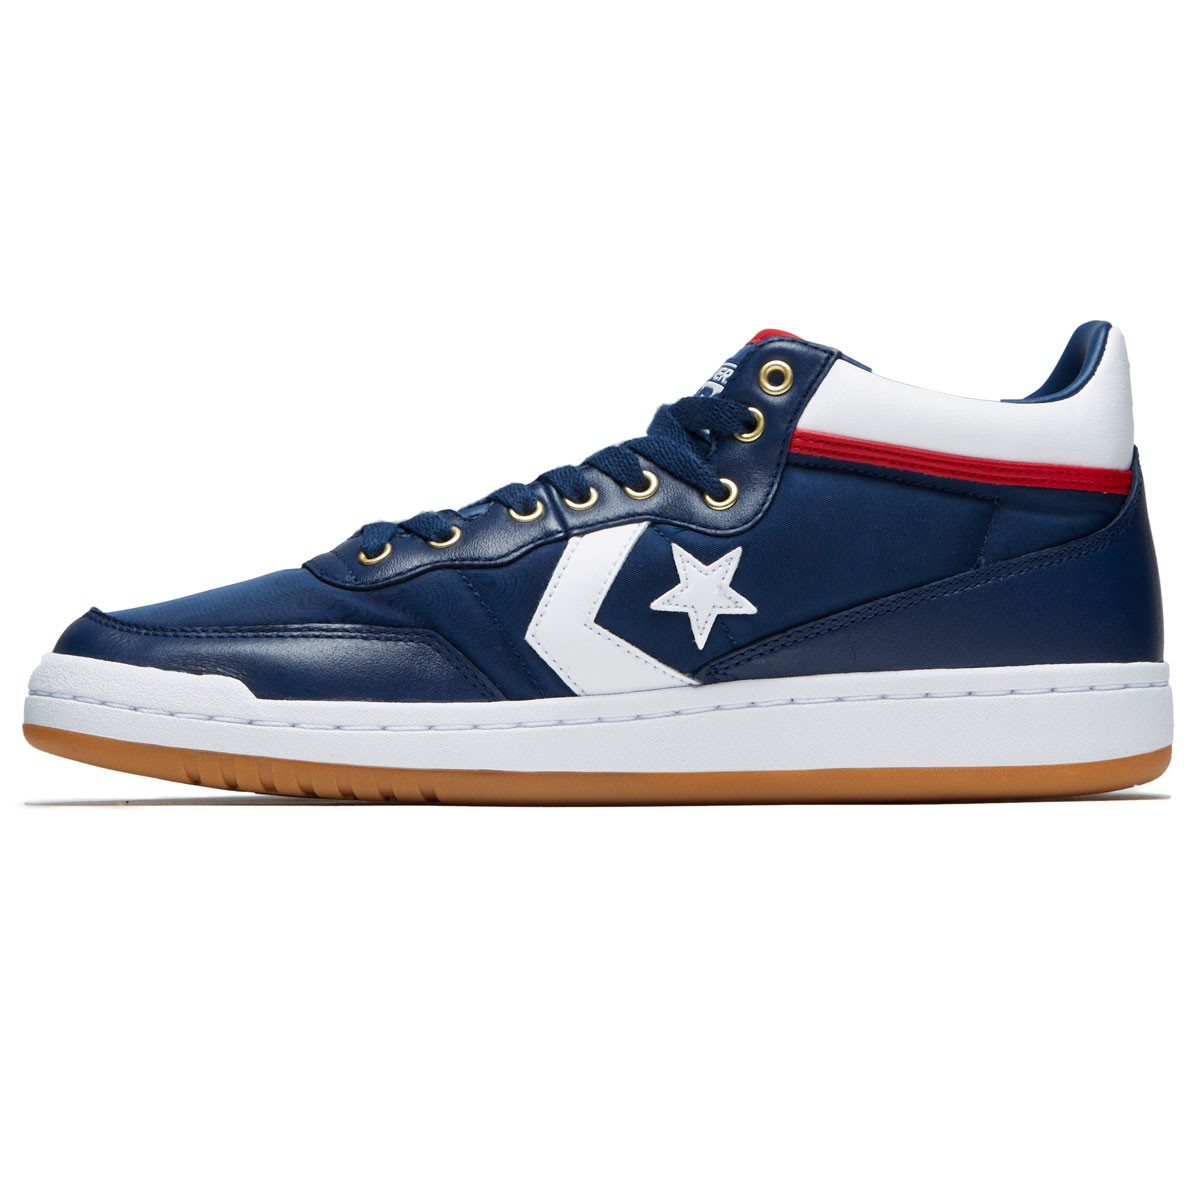 Converse Fastbreak Pro Mid Shoes - Navy White Enamel Red - 10.0 bb9c62eea